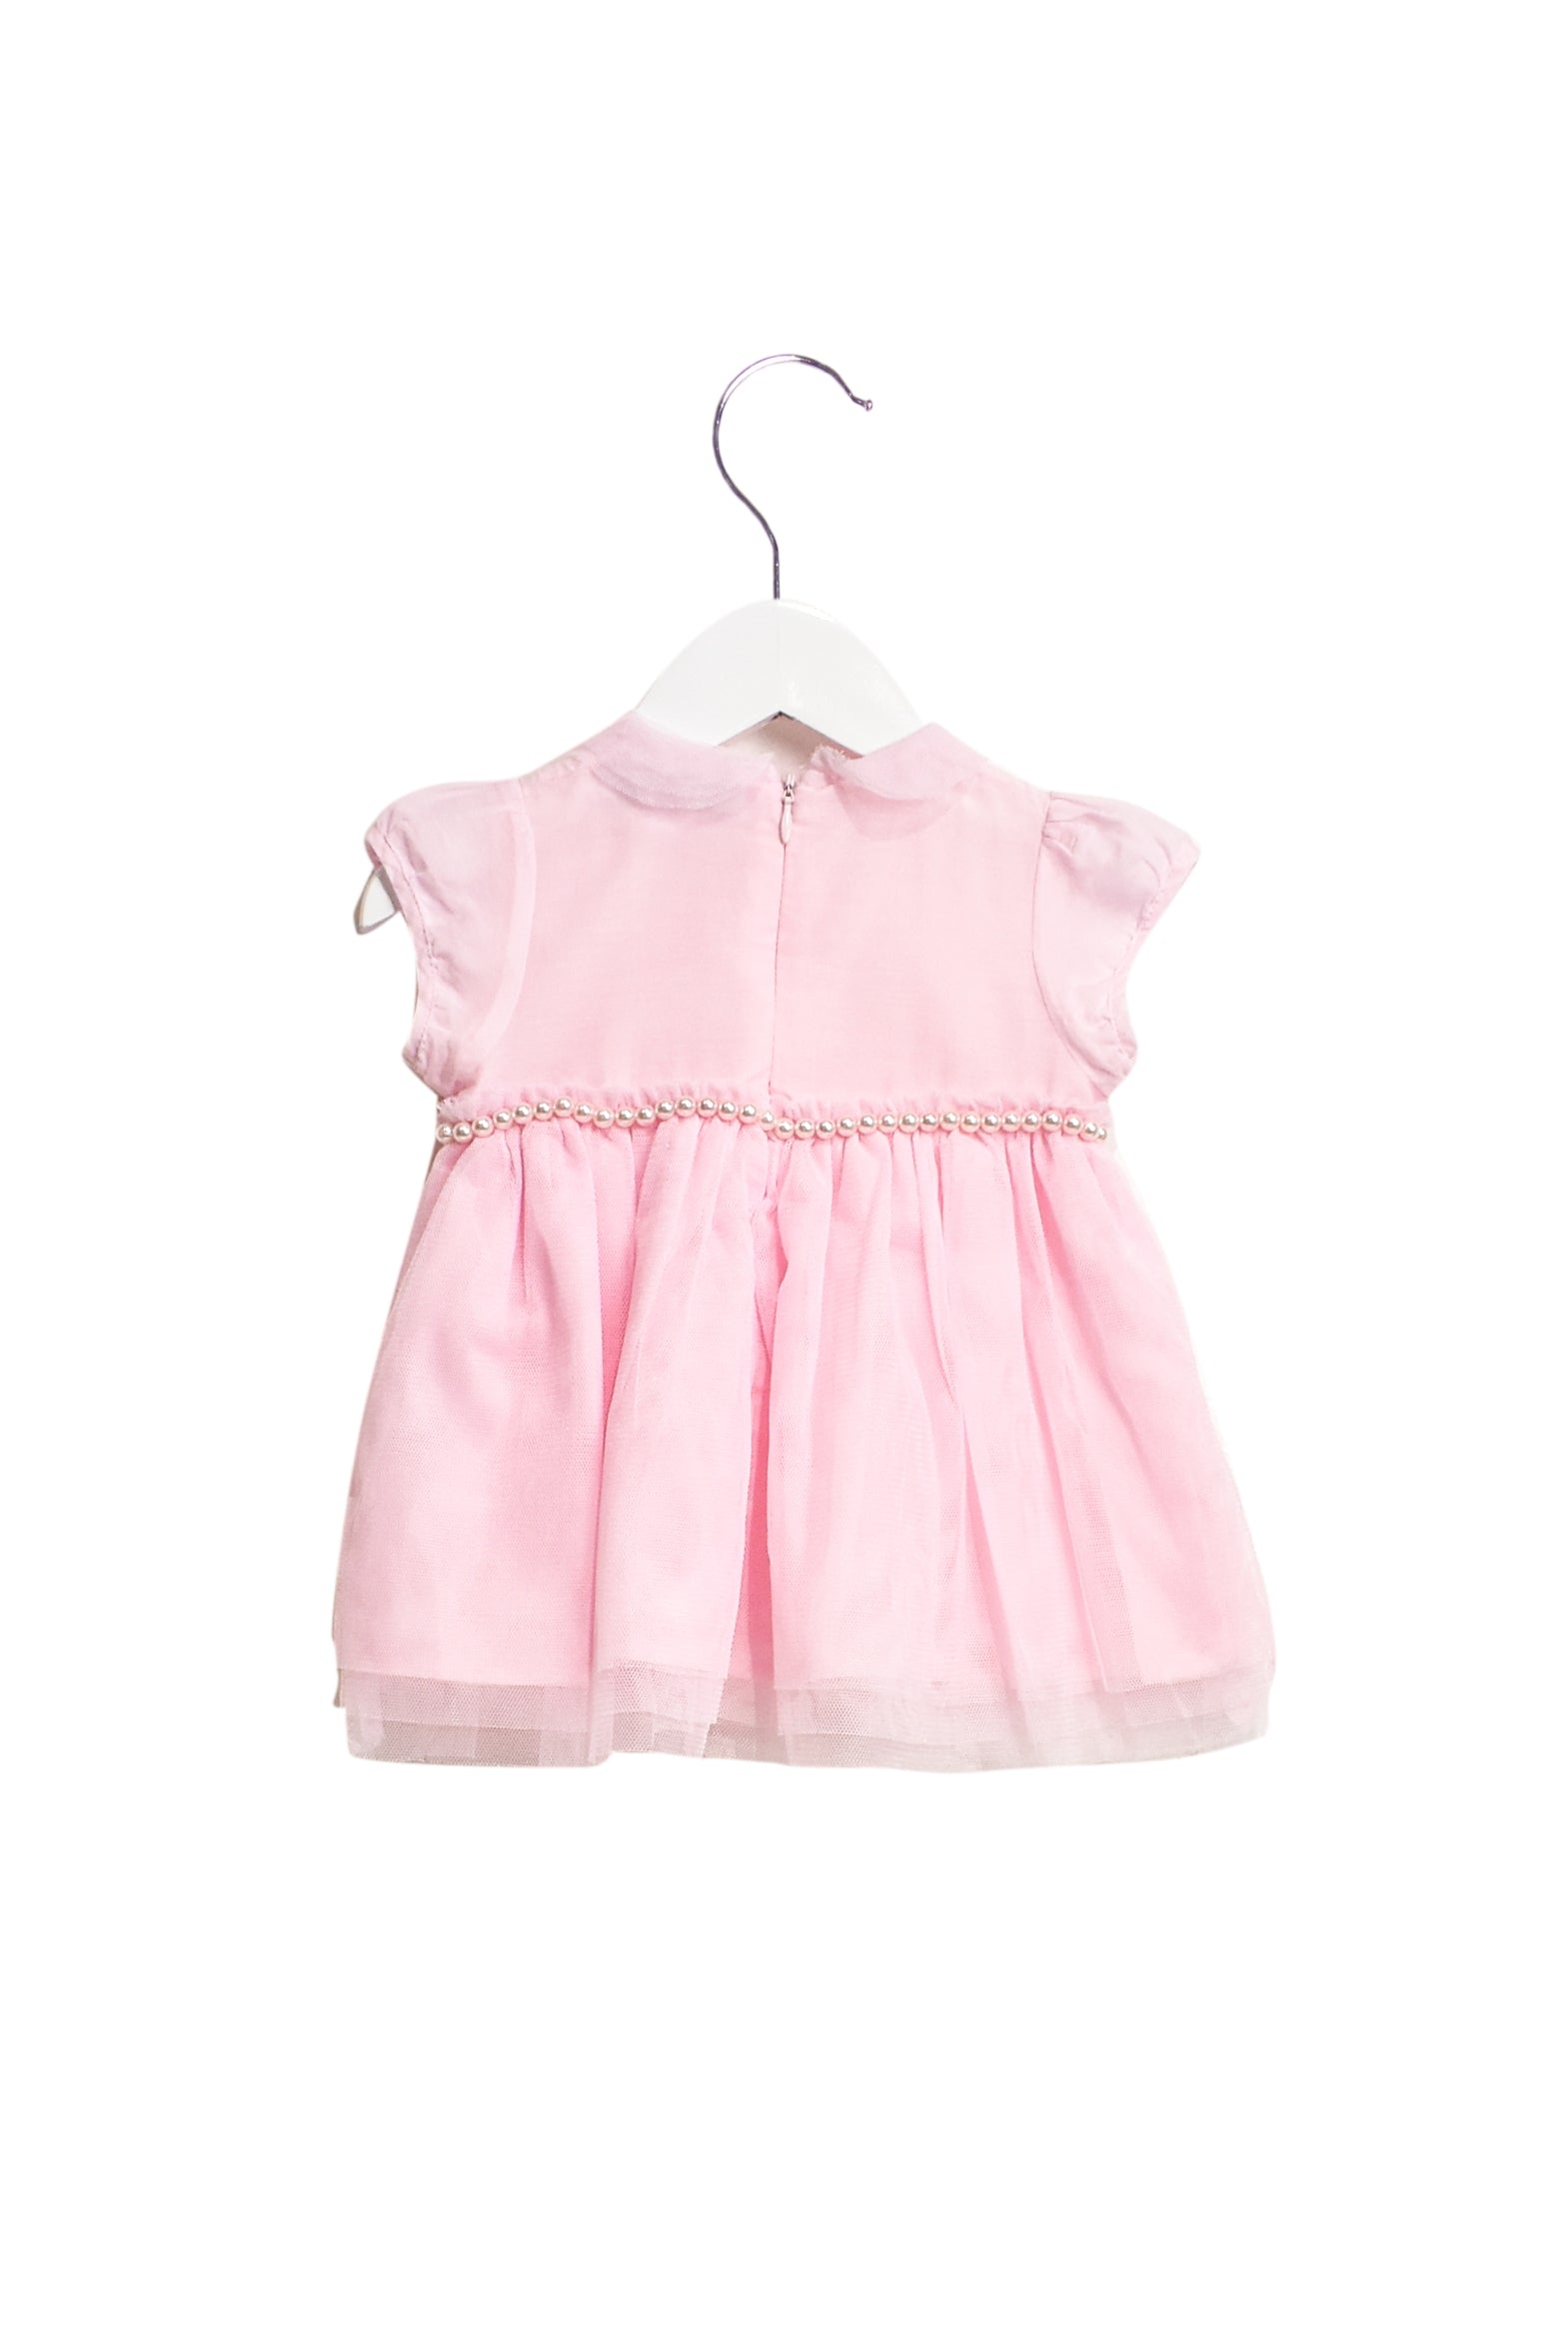 10019683 Chateau de Sable Baby~Dress 6M at Retykle